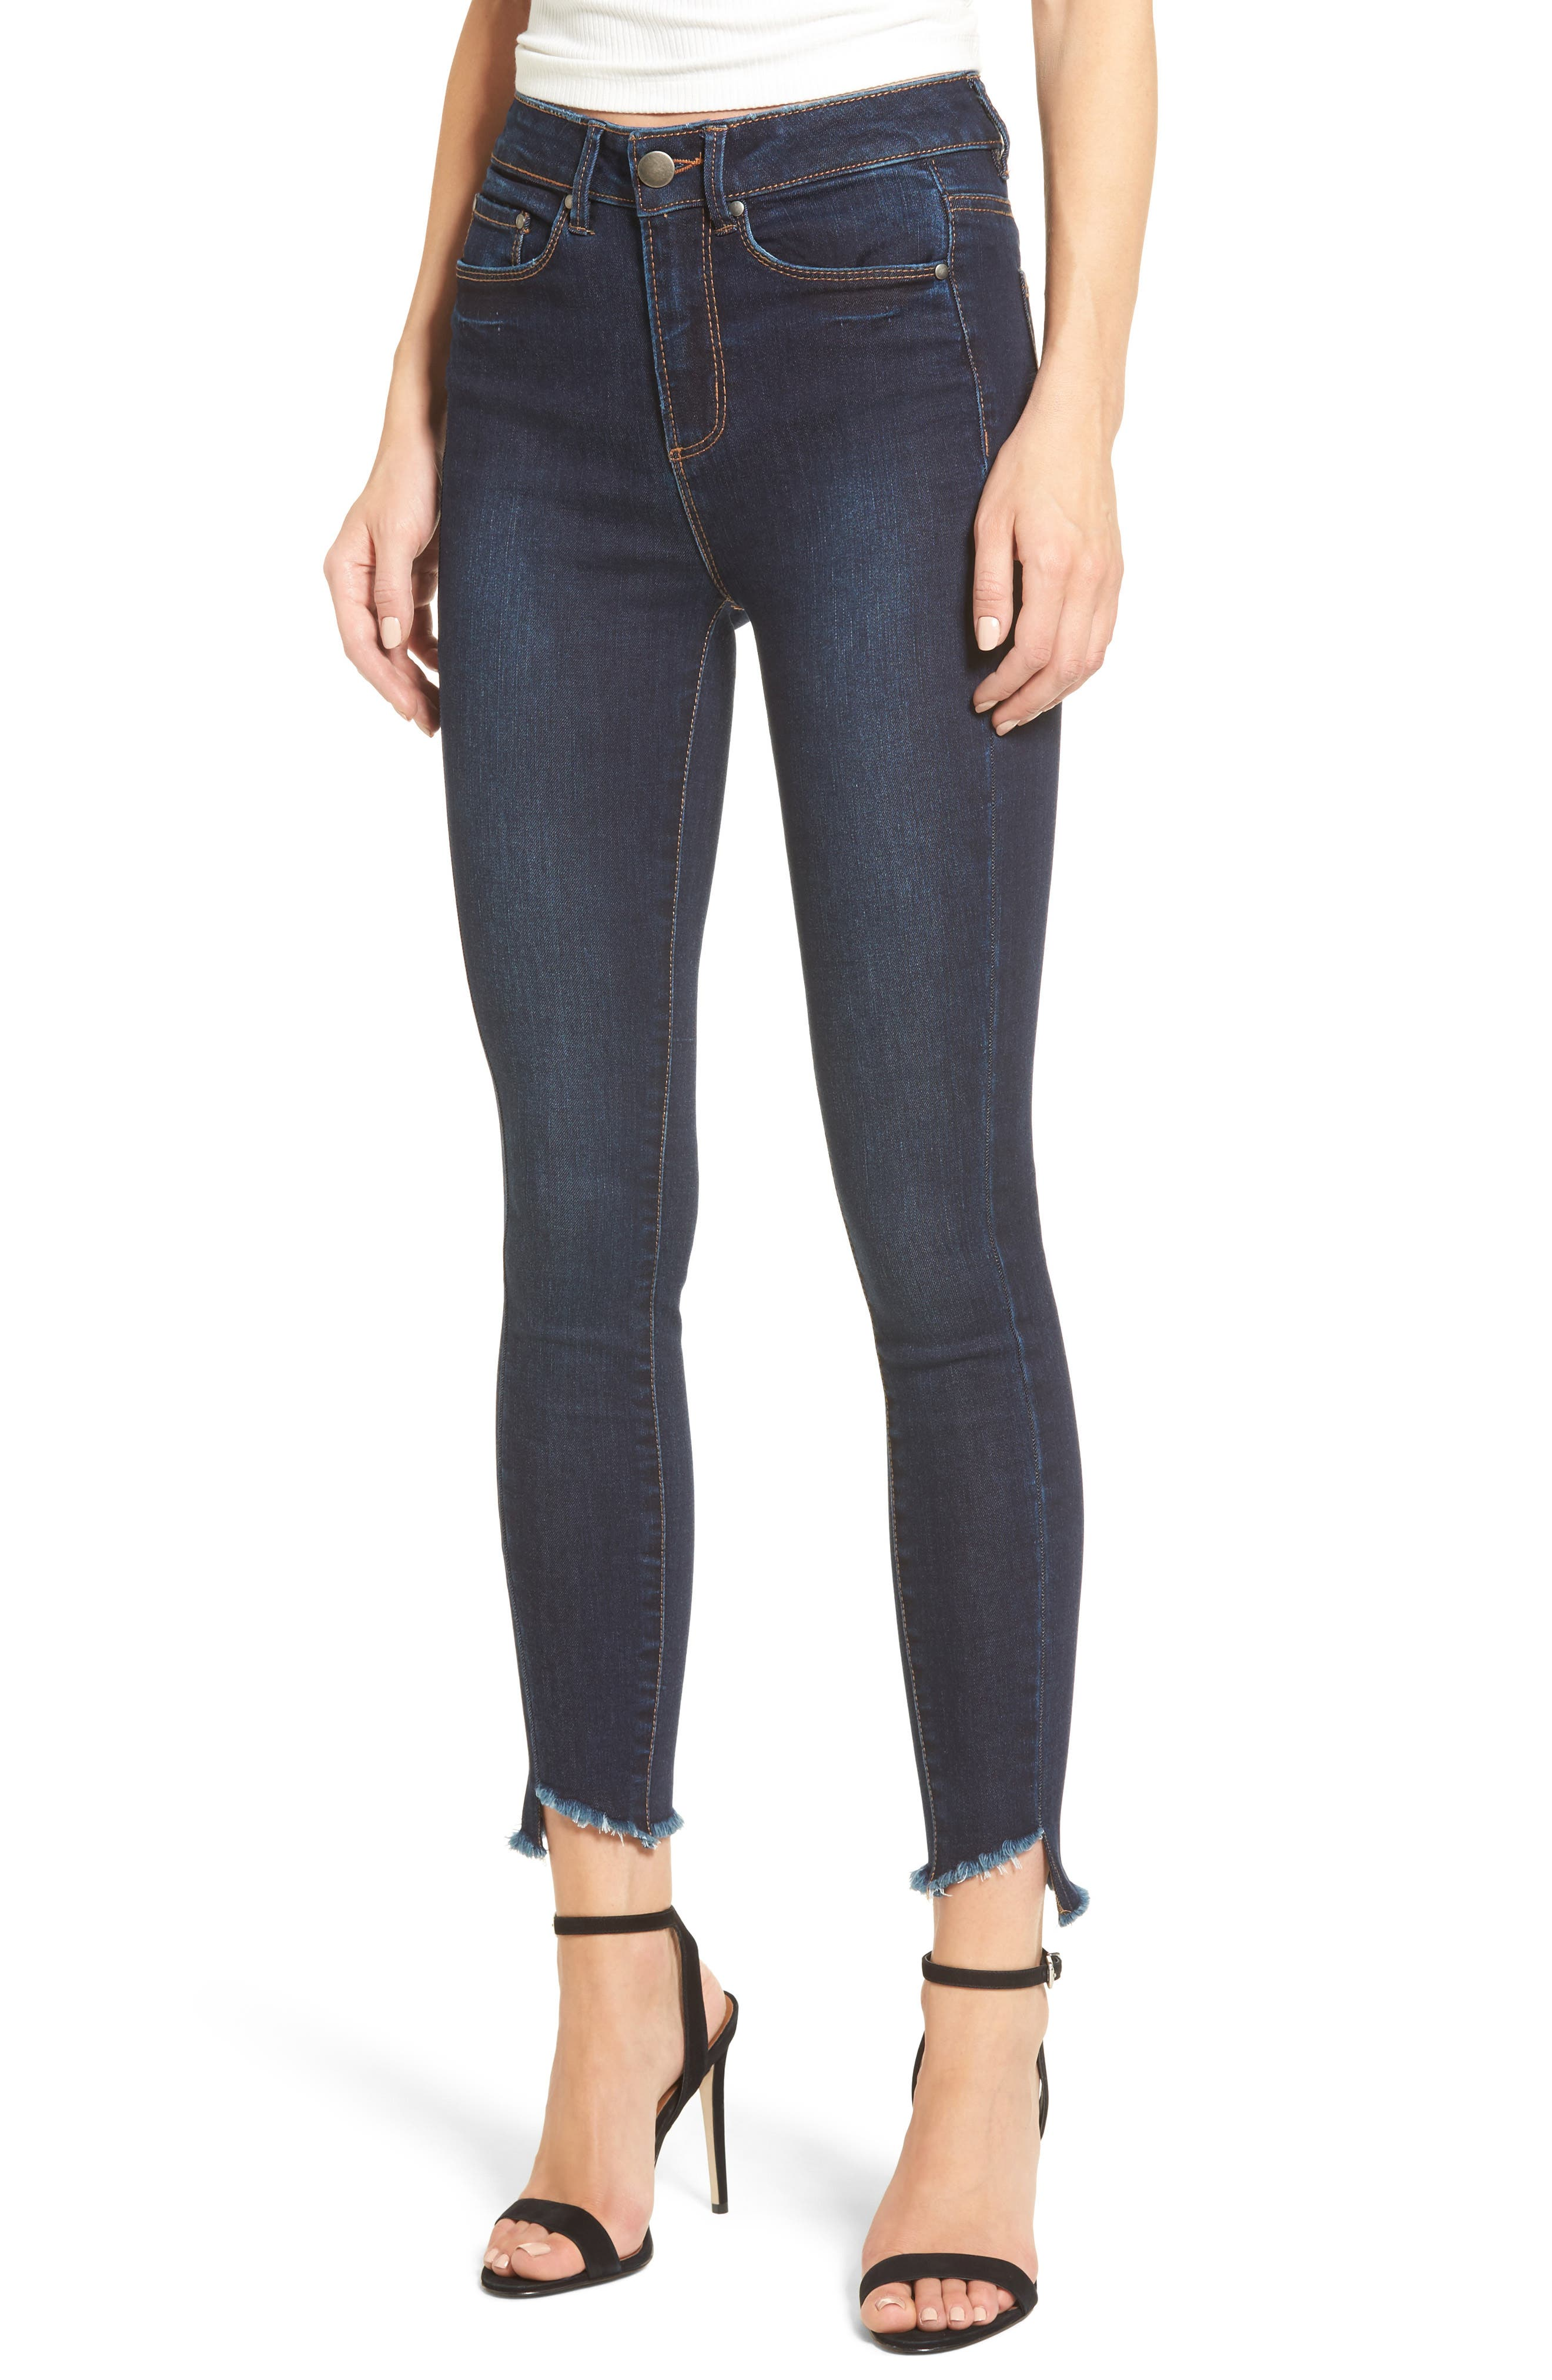 Clark High Waist Skinny Jeans,                             Main thumbnail 1, color,                             REBEL WASH